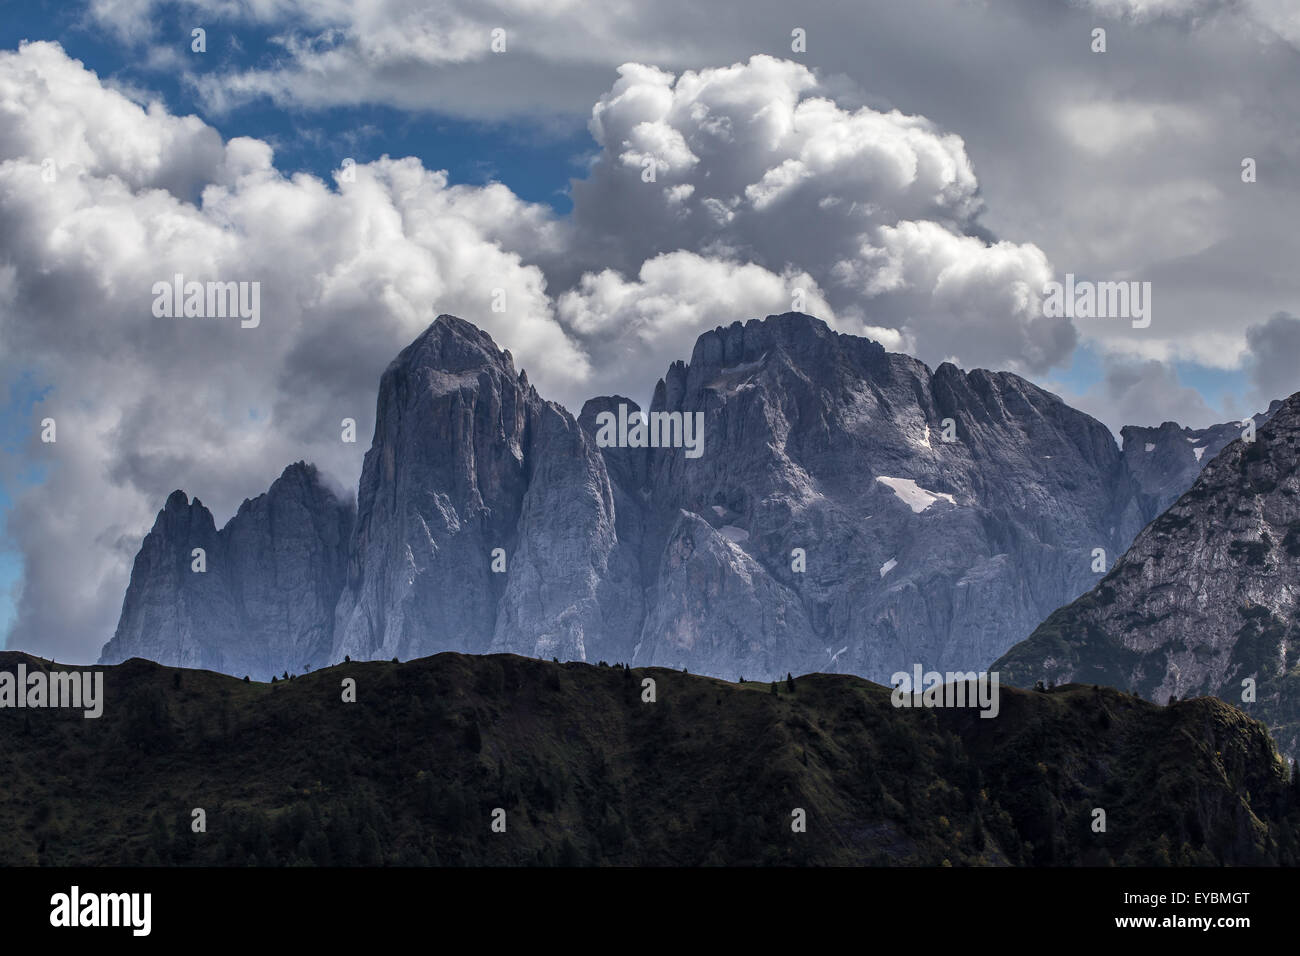 The Agner massif with Mt.Lastei d'Agner.  The Pale di San Martino mountain range.  The Dolomites. Stock Photo